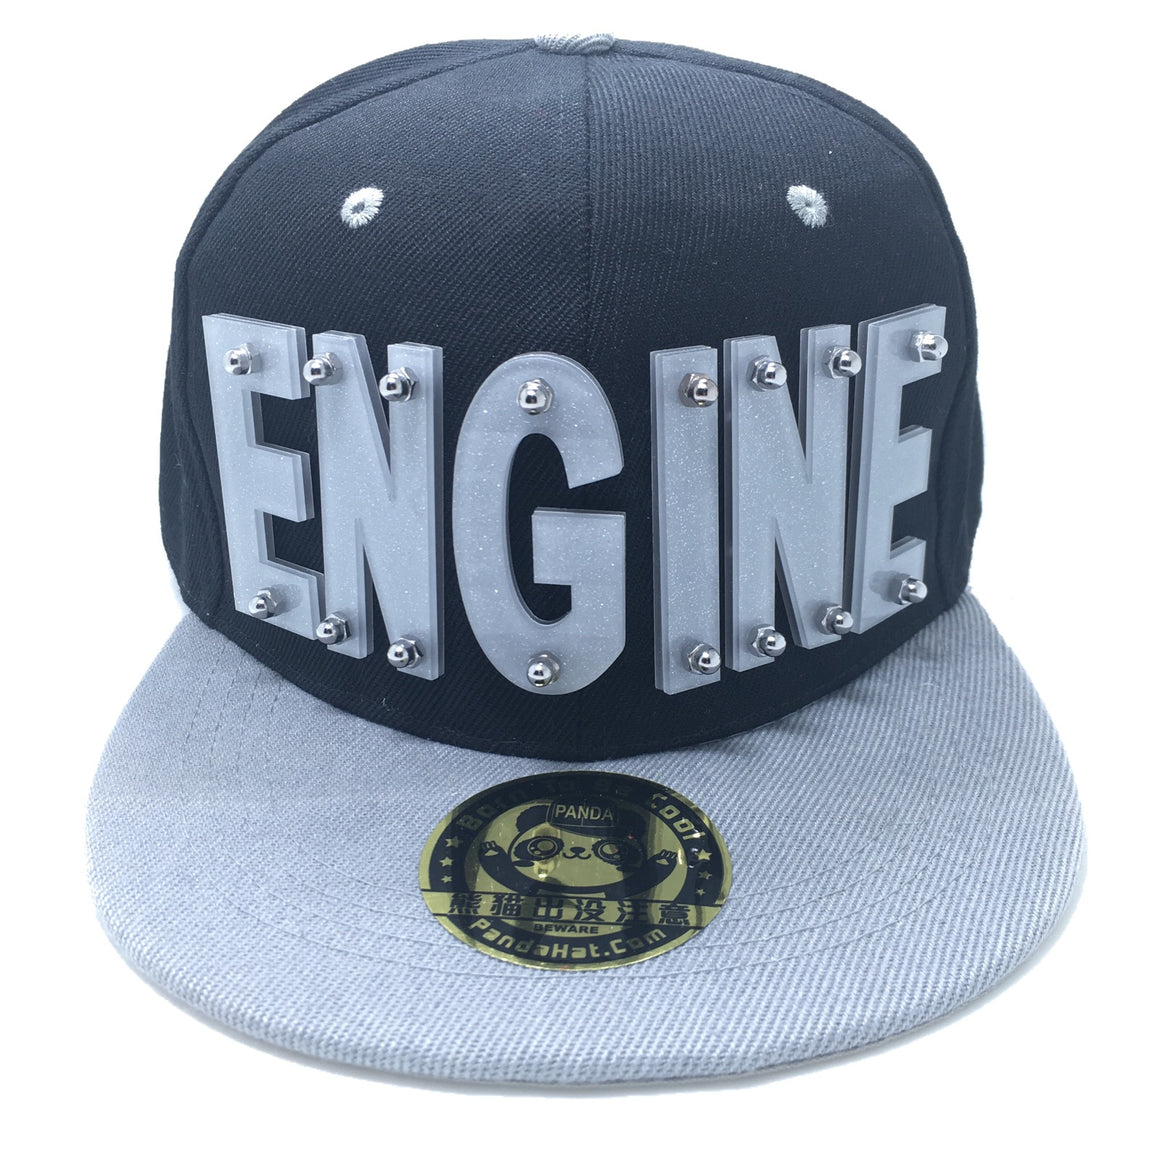 ENGINE HAT IN GREY